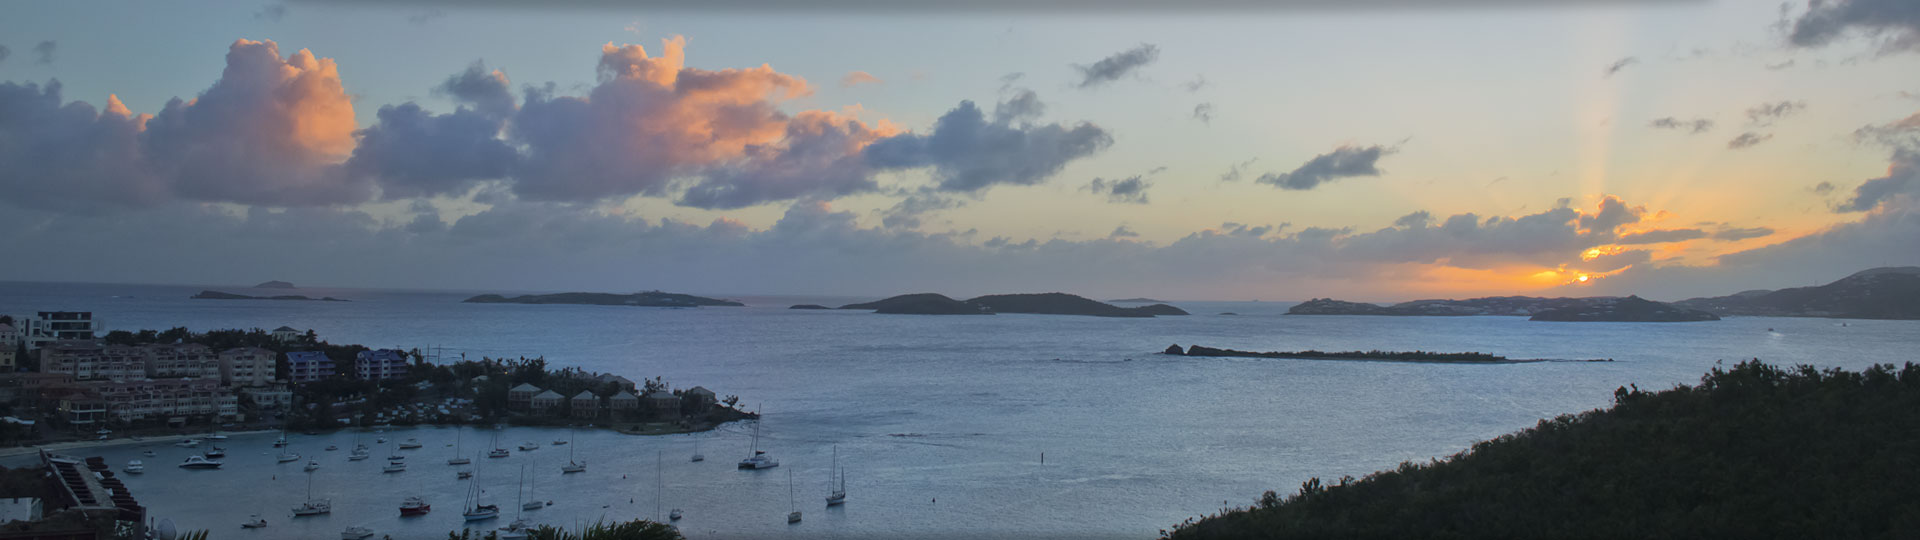 Cruz Bay, St John sunset